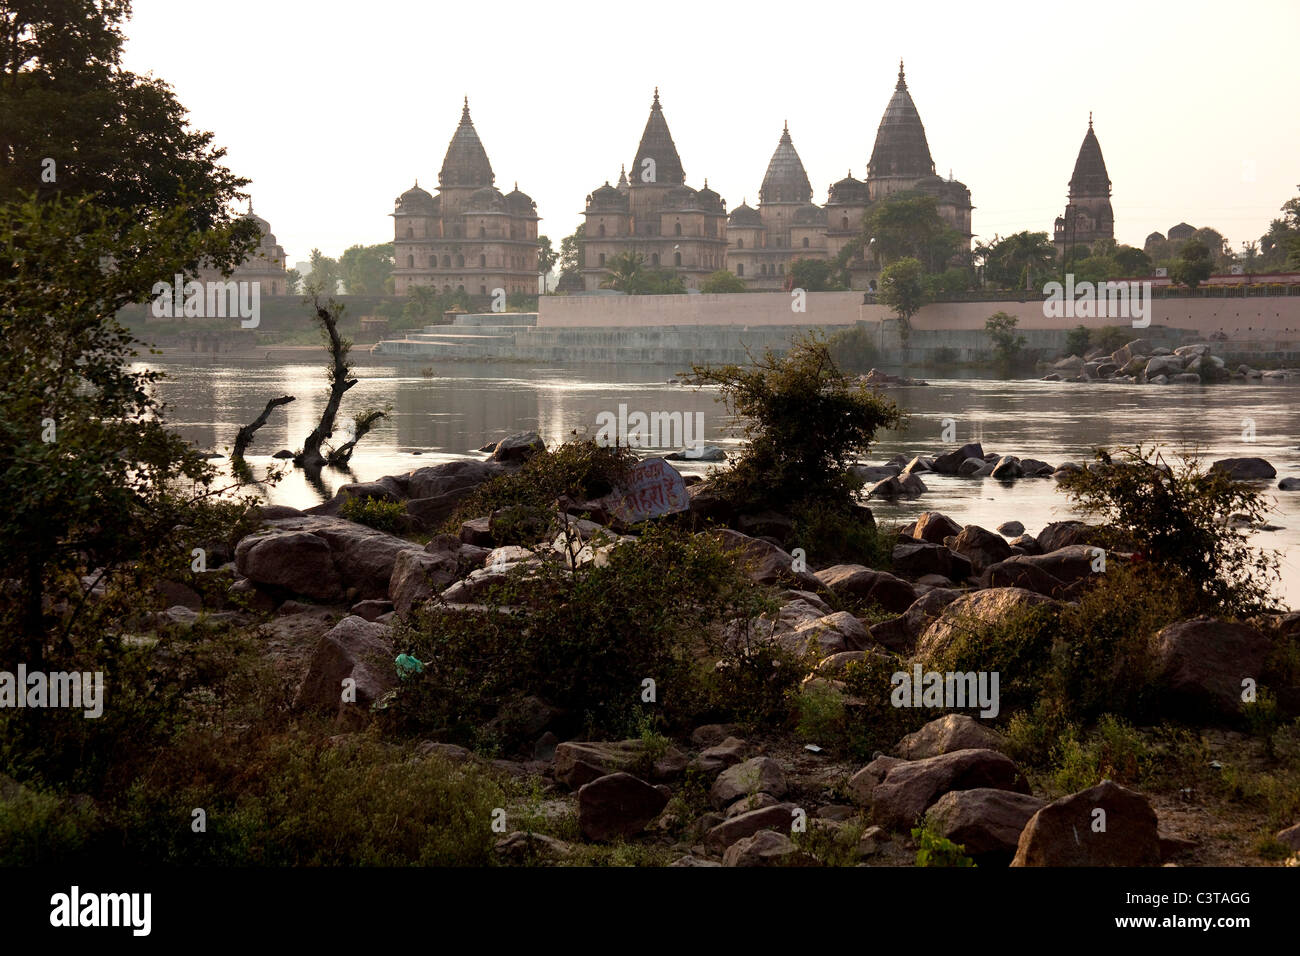 Chhatris in Orchha, Madhya Pradesh, India, Asia - Stock Image